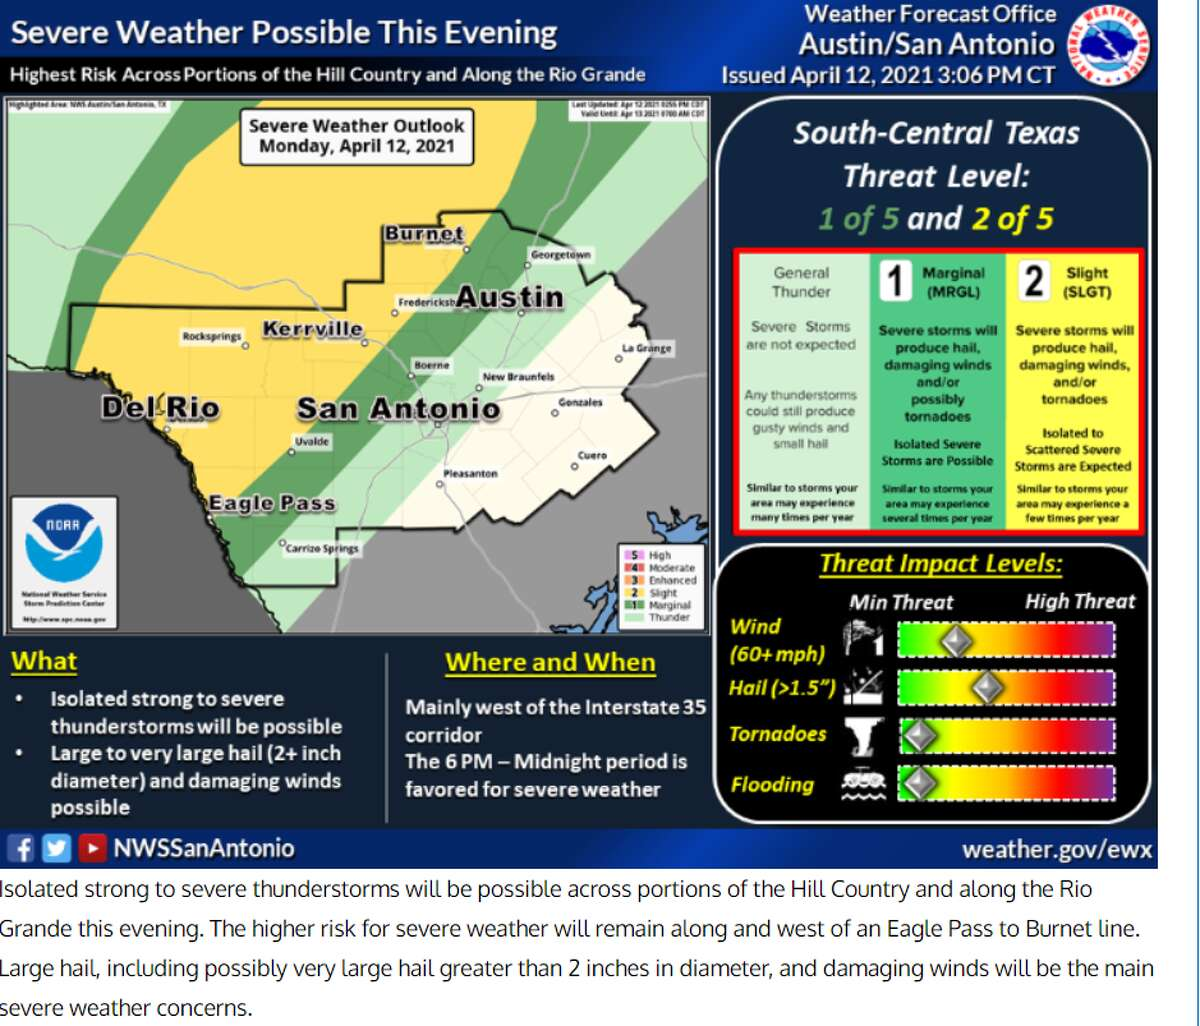 Severe thunderstorms are possible to the west of the San Antonio area according to forecasters.